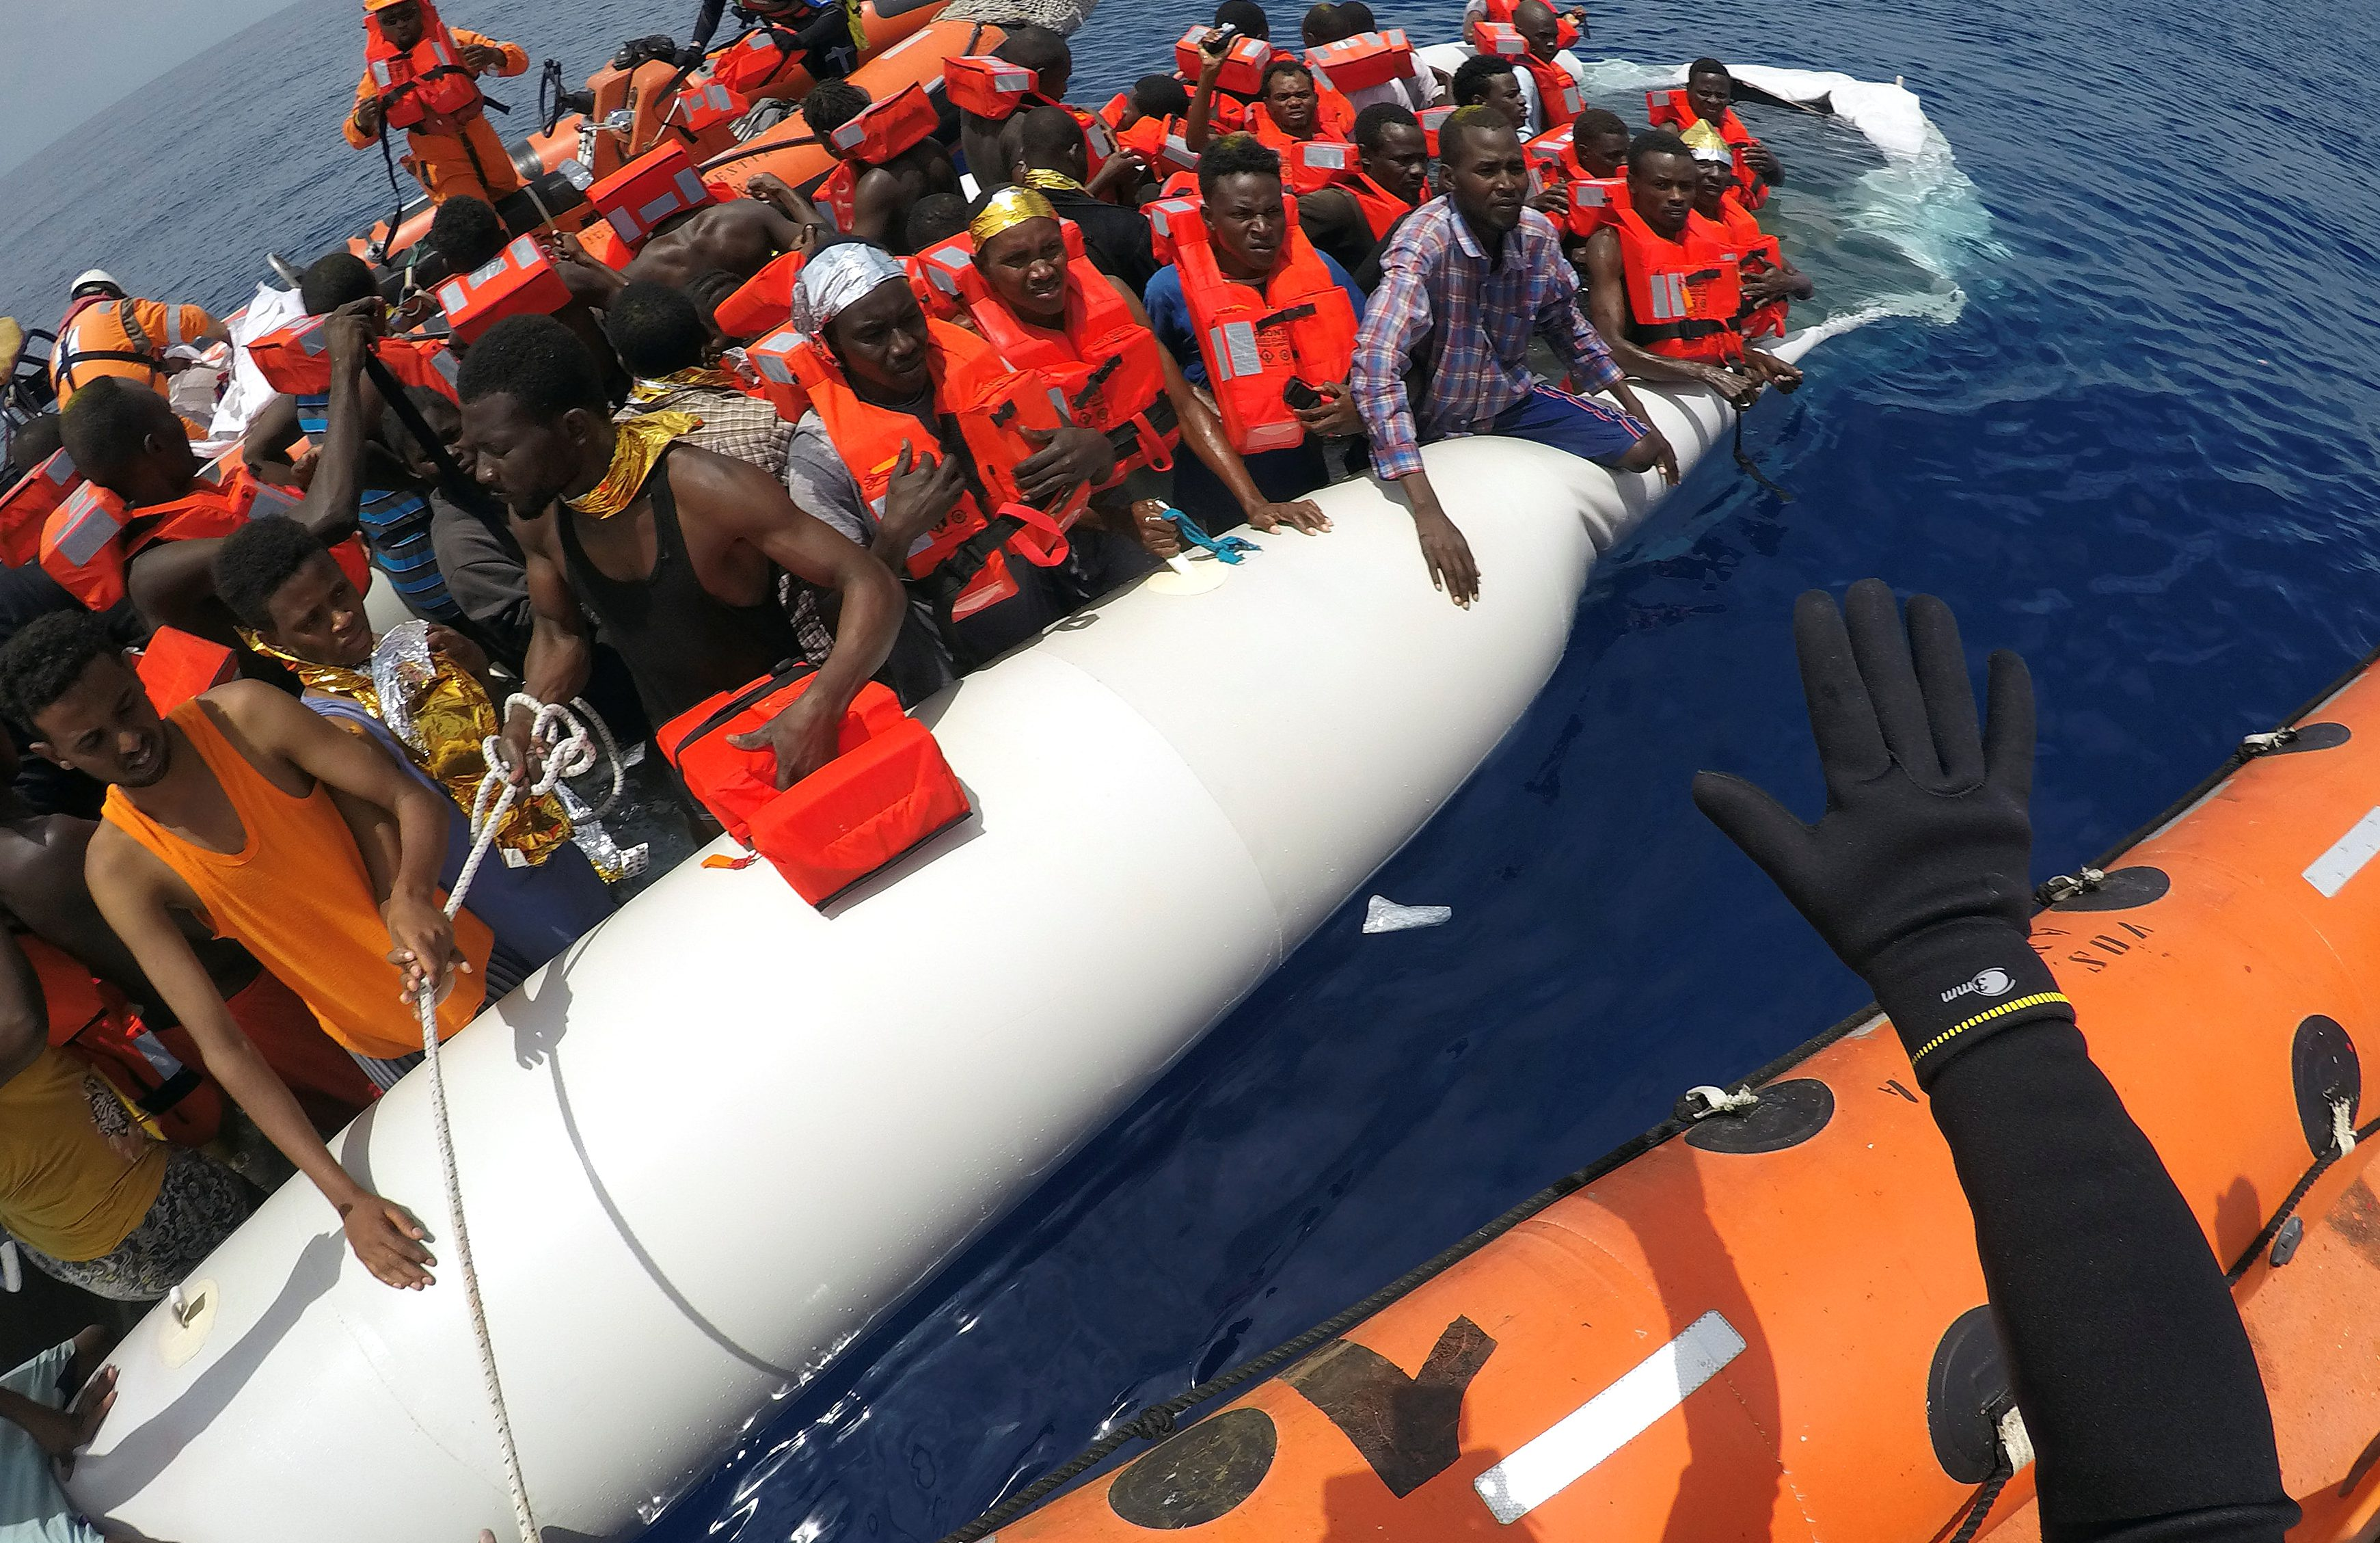 These migrants—on a dinghy to cross the Mediterranean sea from Libya—were rescued in June, 2017. An estimated 2,600 have drowned making the same crossing in unseaworthy ships this year.